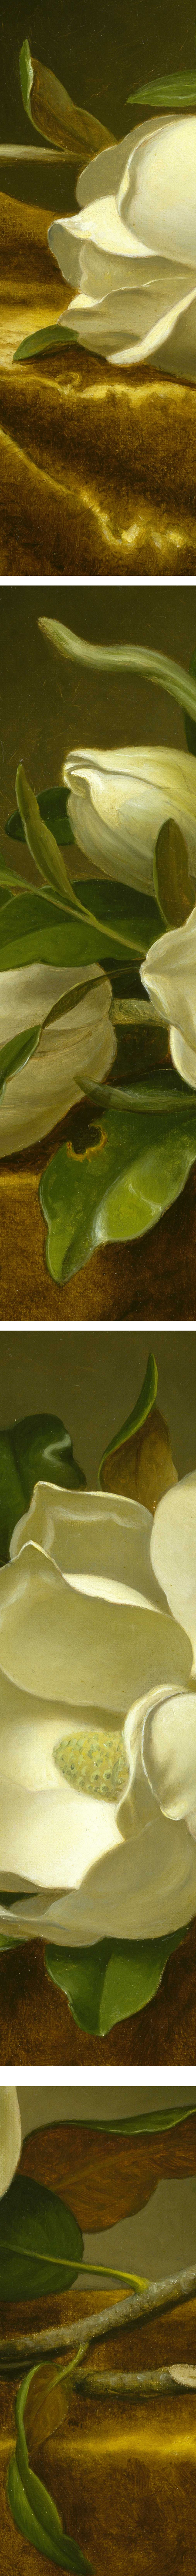 Magnolias on Gold Velvet Cloth, Martin Johnson Heade (details)